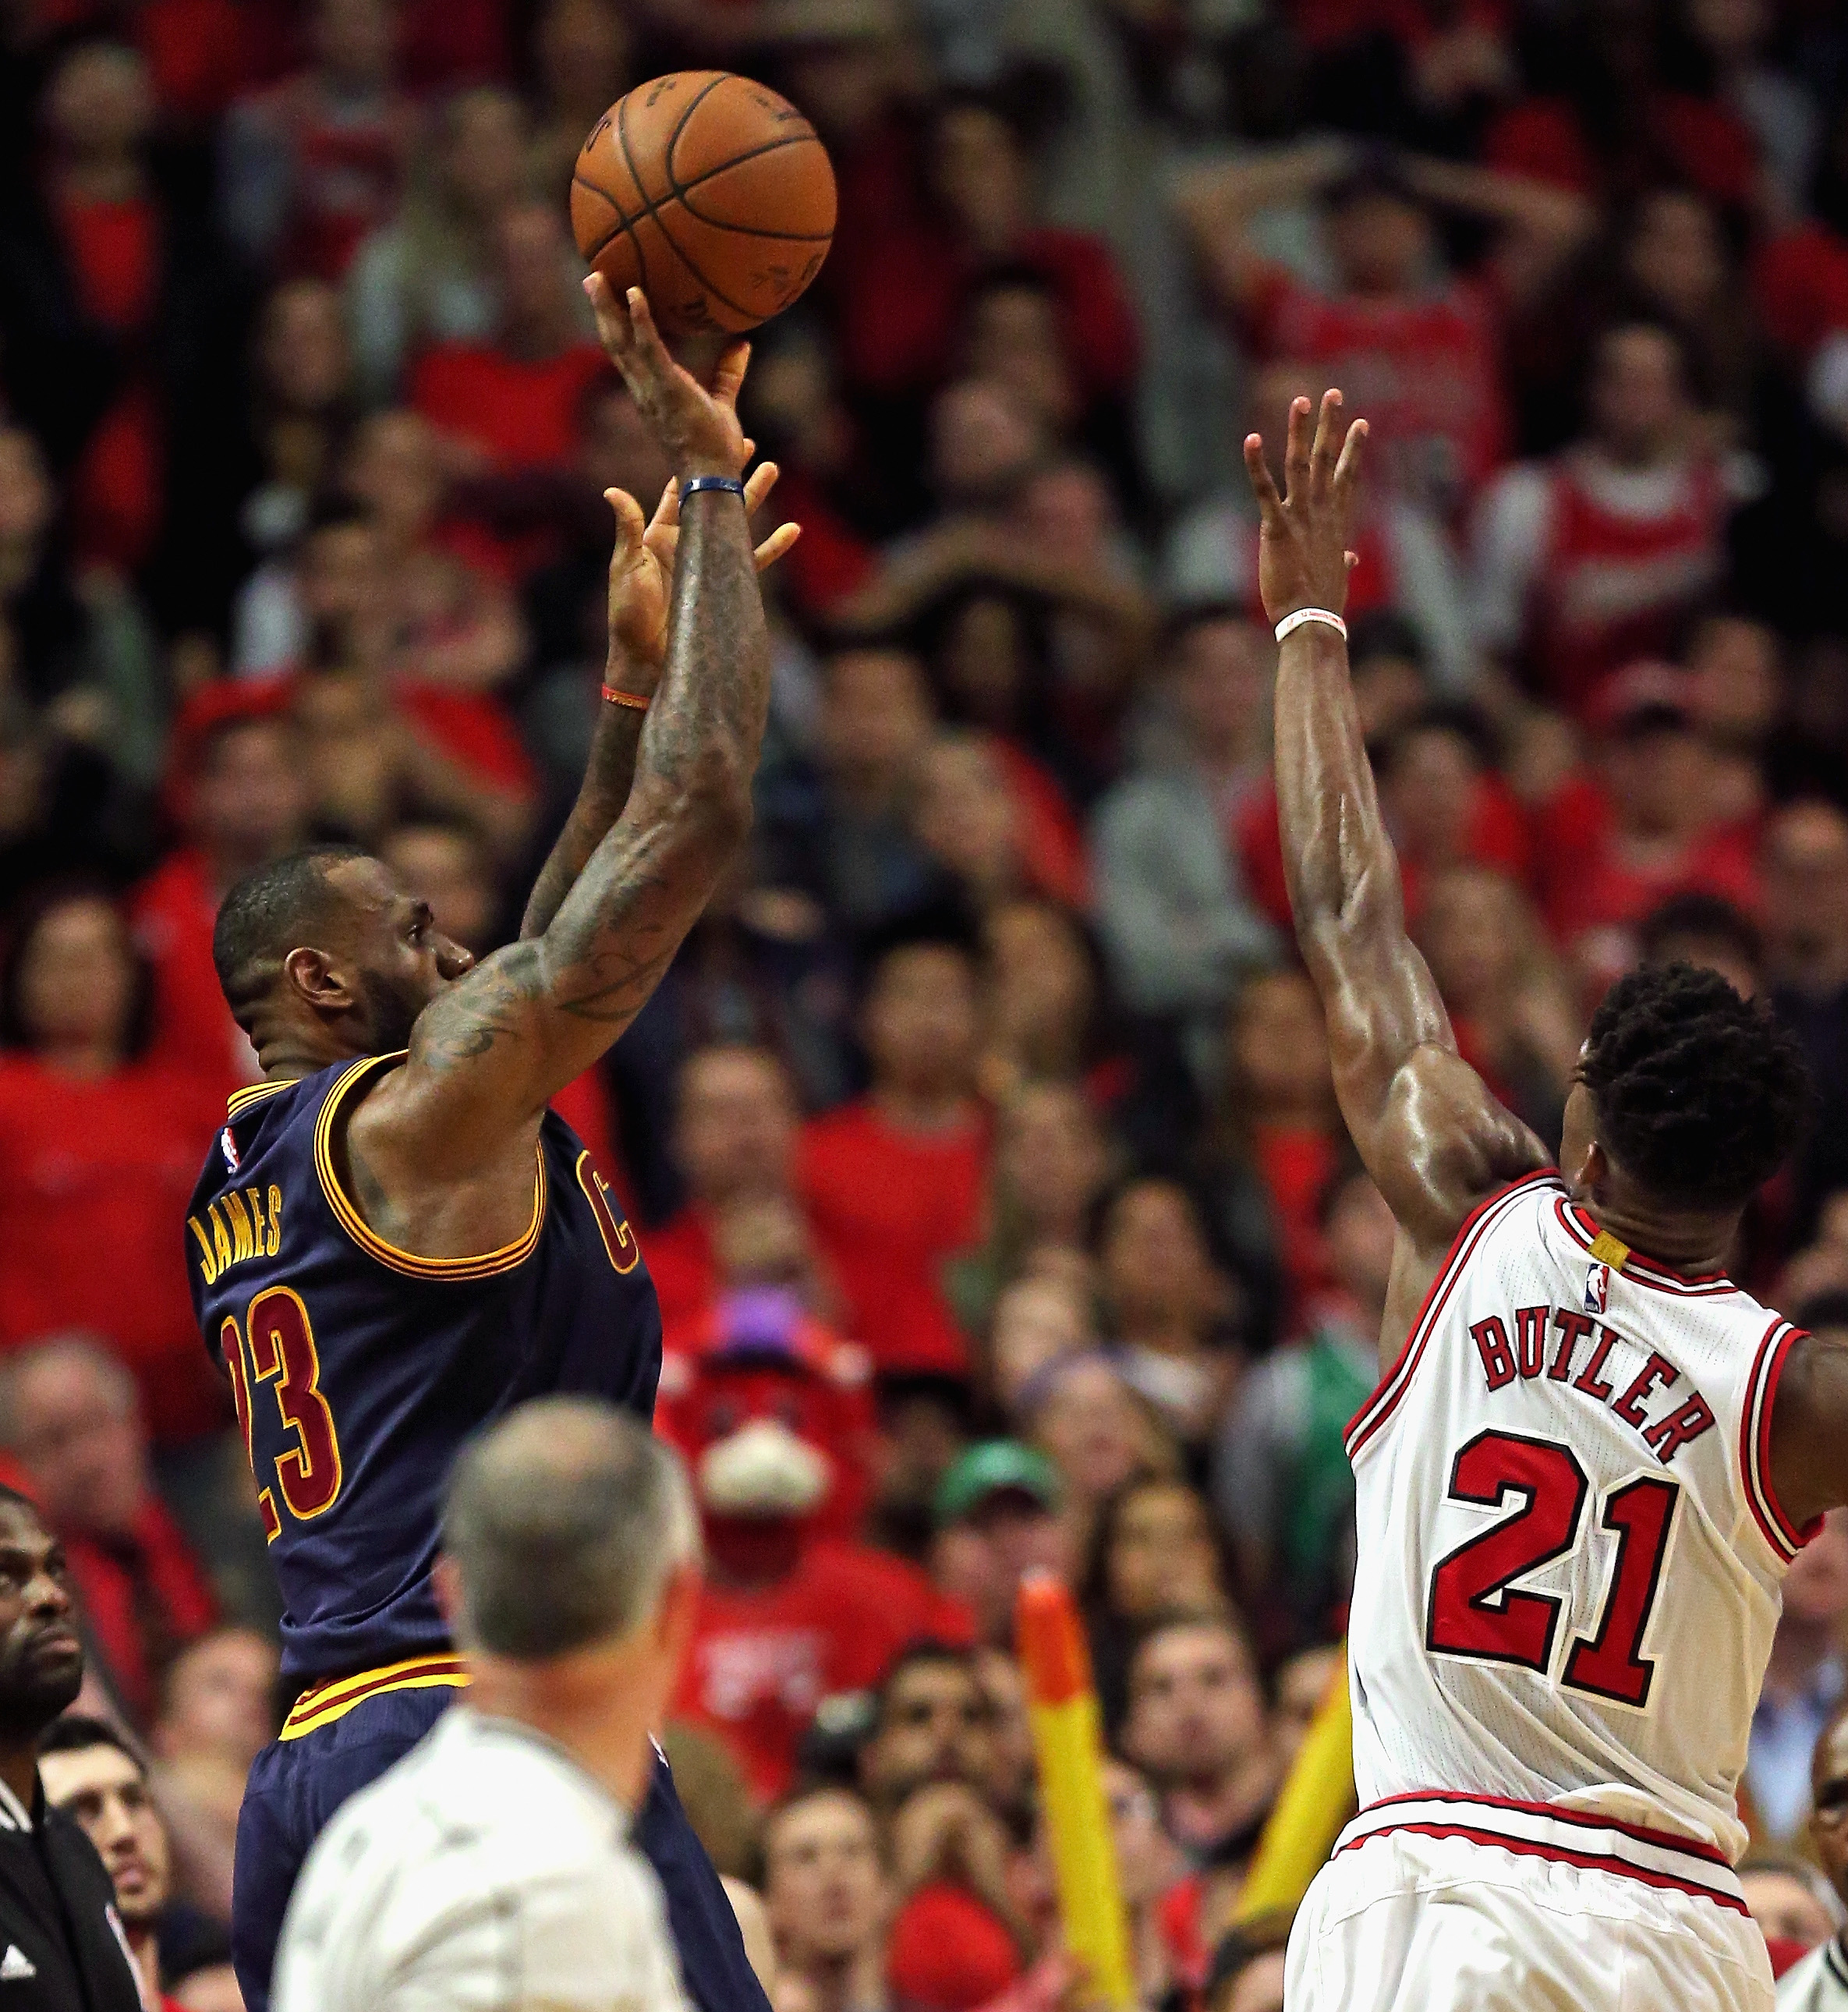 CHICAGO, IL - MAY 10: LeBron James #23 of the Cleveland Cavaliers shoots the game-winning, two point shot over Jimmy Butler #21 of the Chicago Bulls in Game Four of the Eastern Conference Semifinals of the 2015 NBA Playoffs at the United Center on May 10,